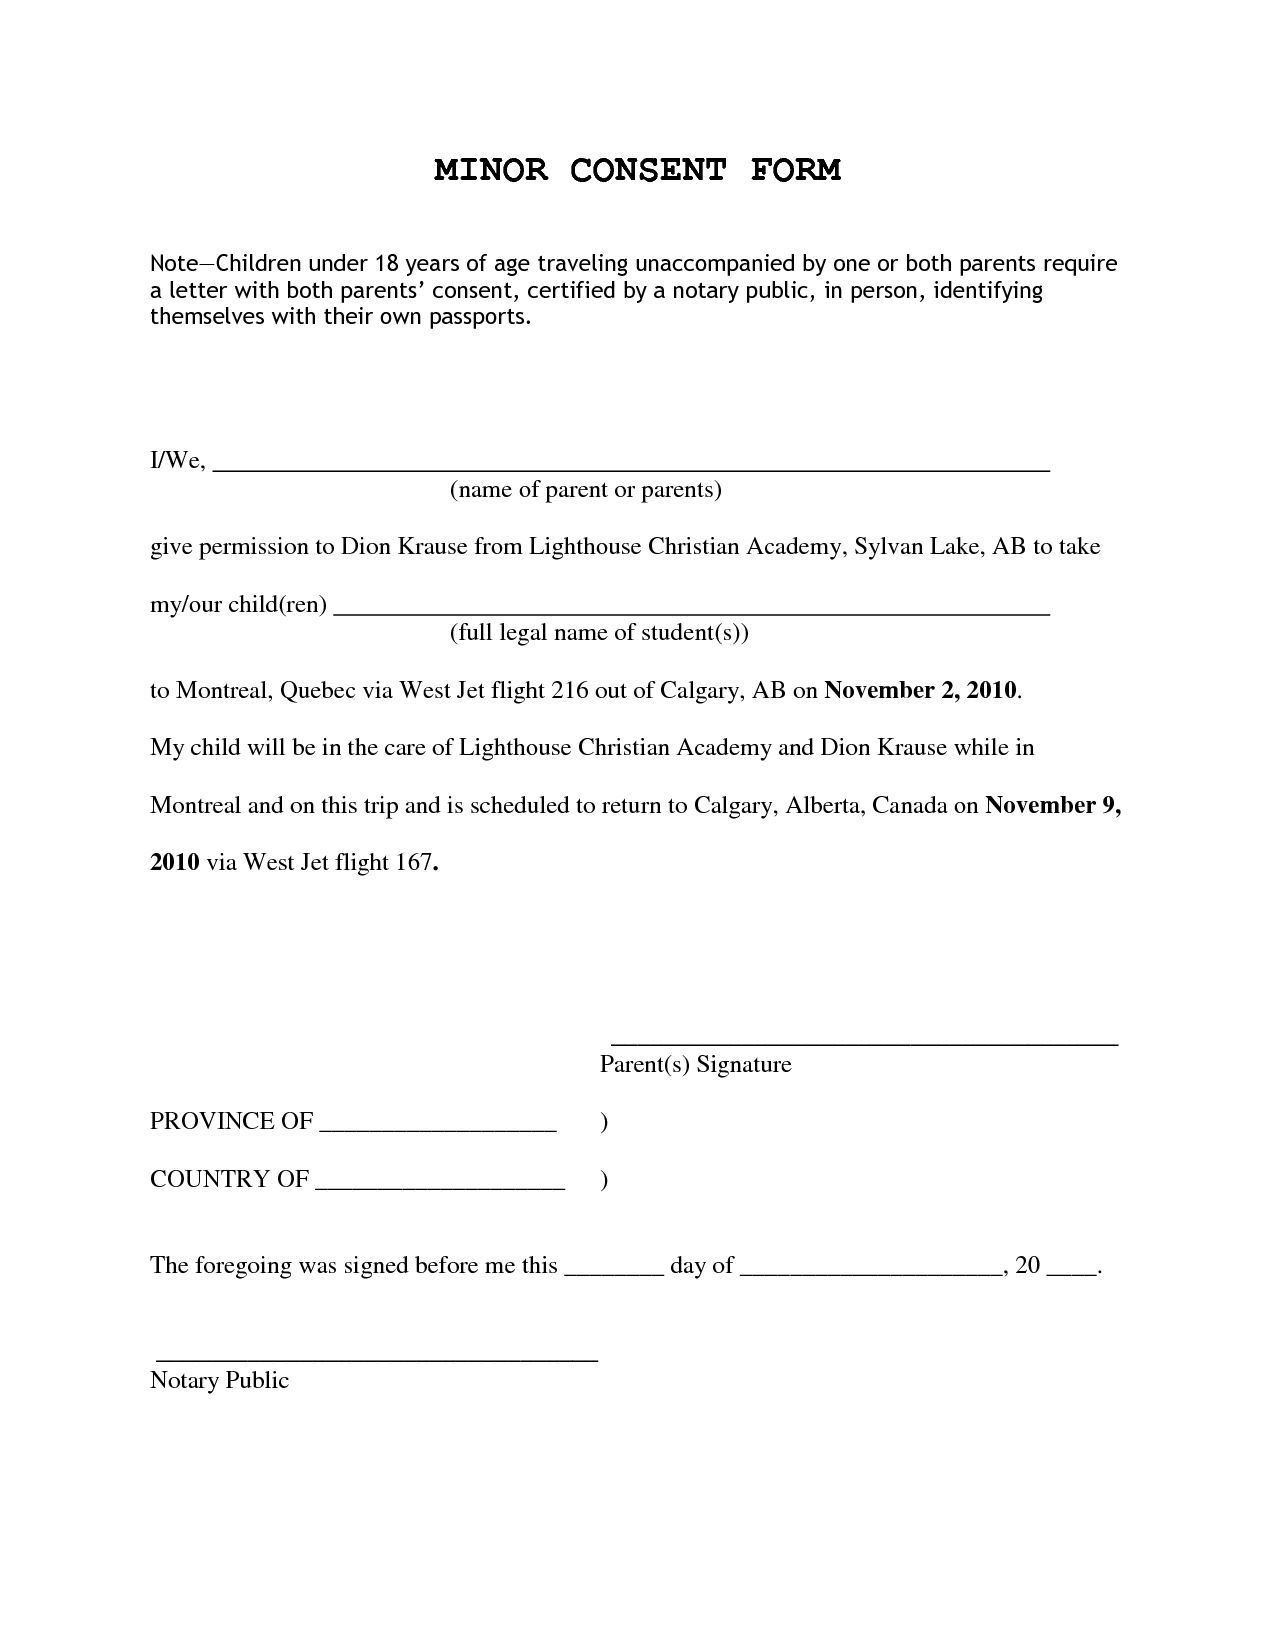 Travel Consent Form For Minor Child Traveling With One Parent Sample